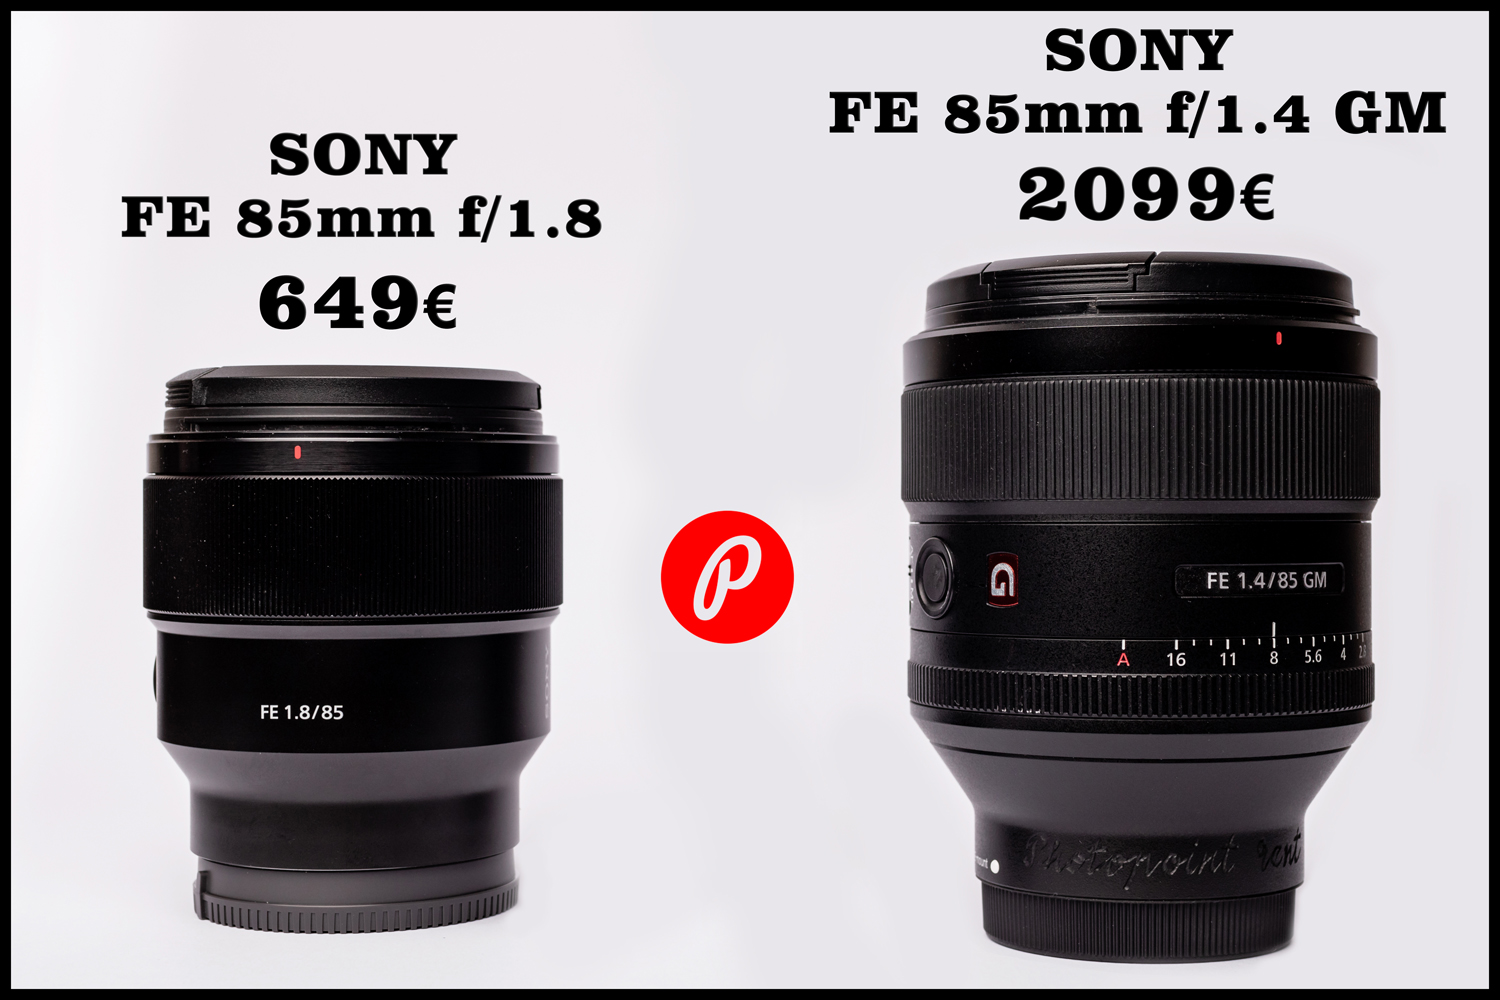 Kas Sony FE 85mm f/1.4 GM on väärt ekstra 1450€?